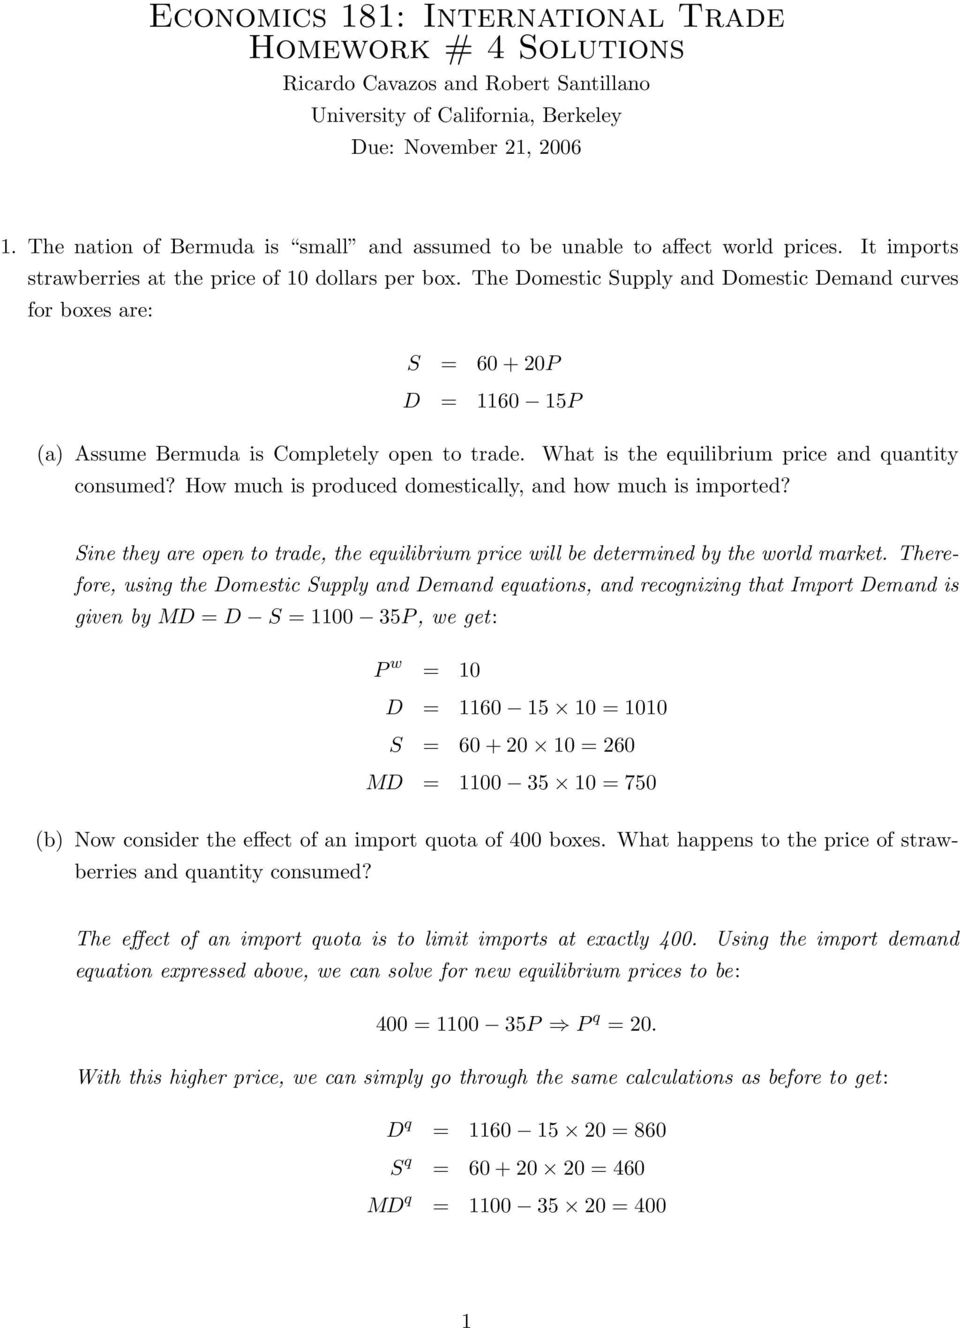 The Domestic Supply and Domestic Demand curves for boxes are: S = 60 + 0